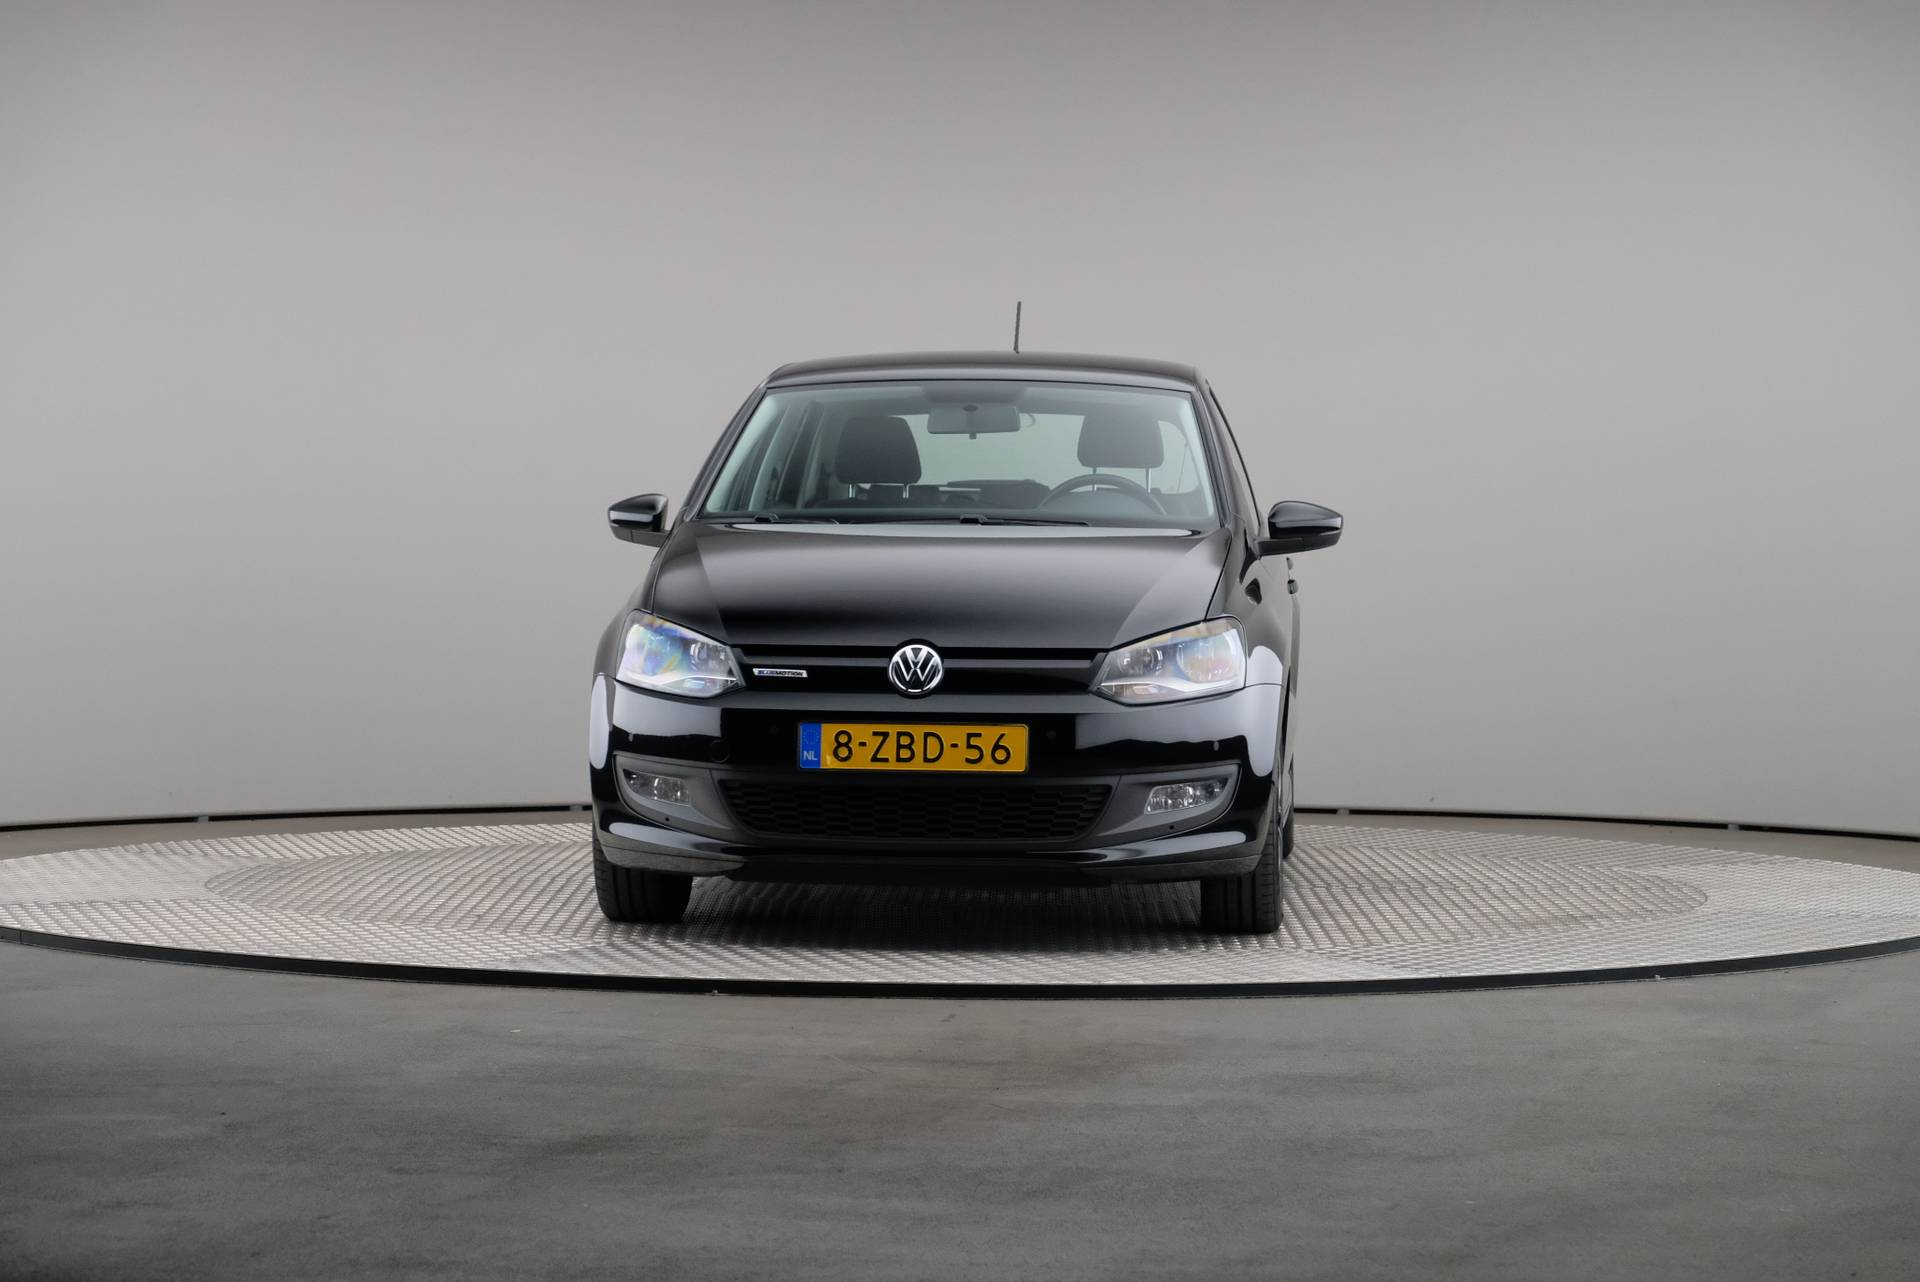 Volkswagen Polo 1.4 TDI BlueMotion, Executive, Airco, Navigatie, 360-image33